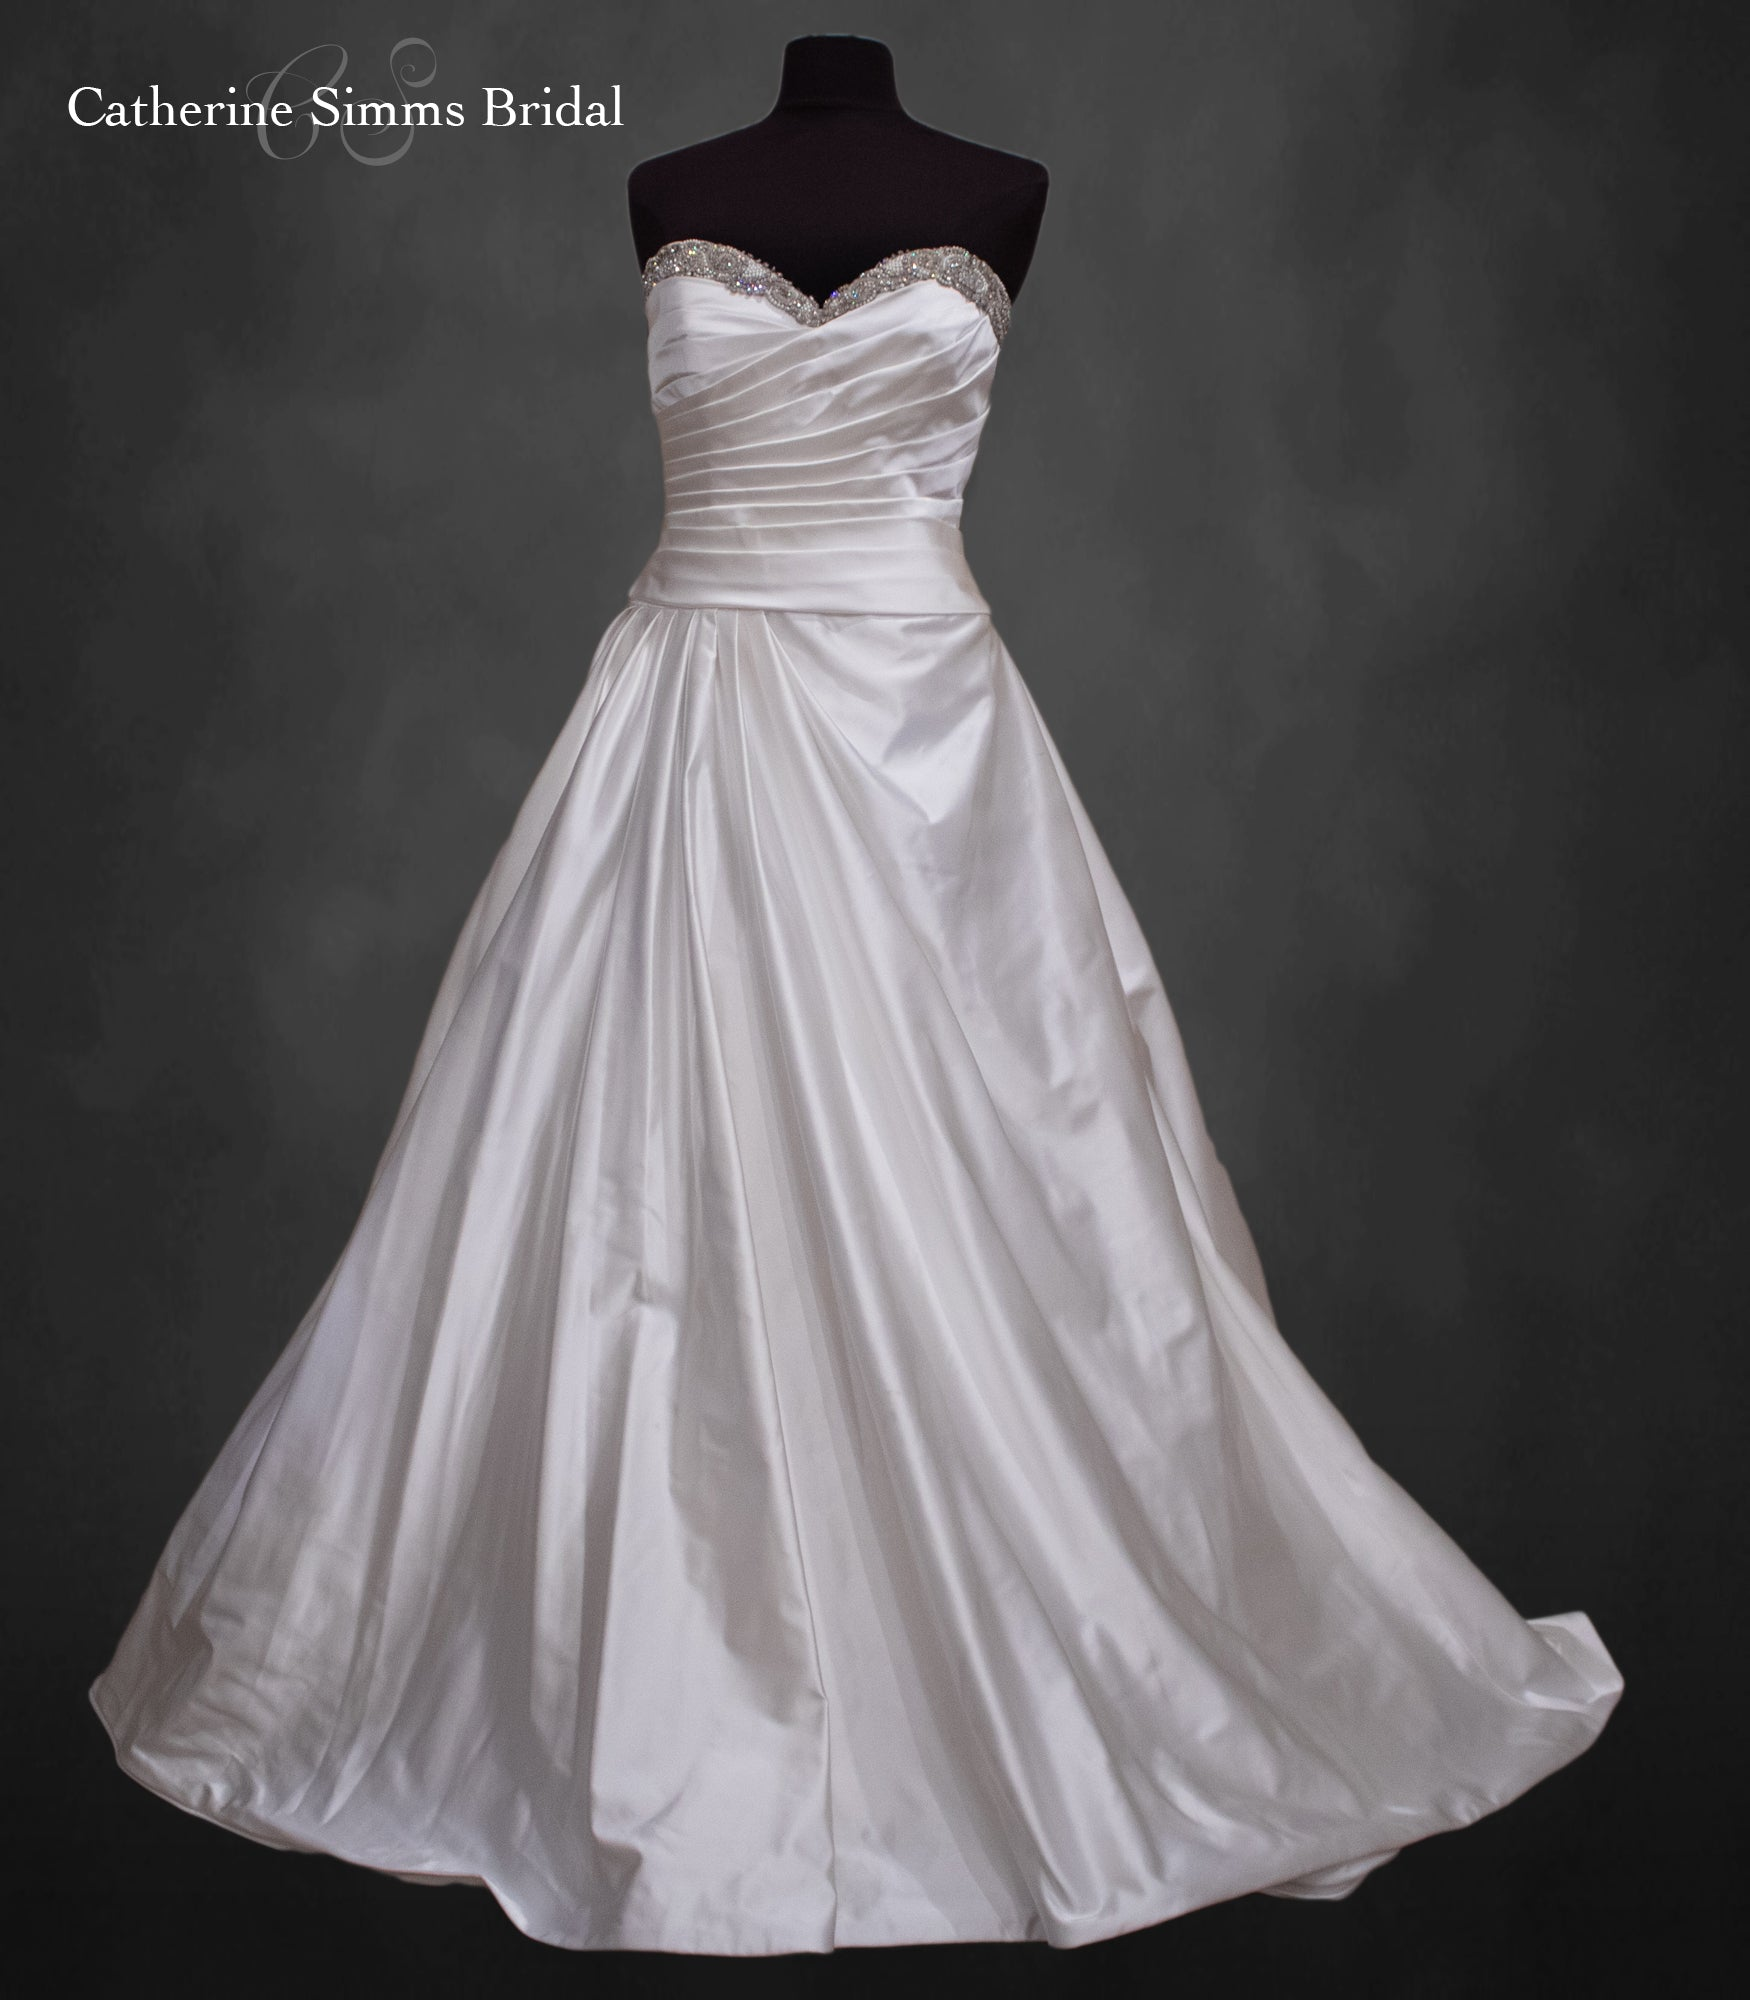 Beaded Sweetheart Neckline Gown